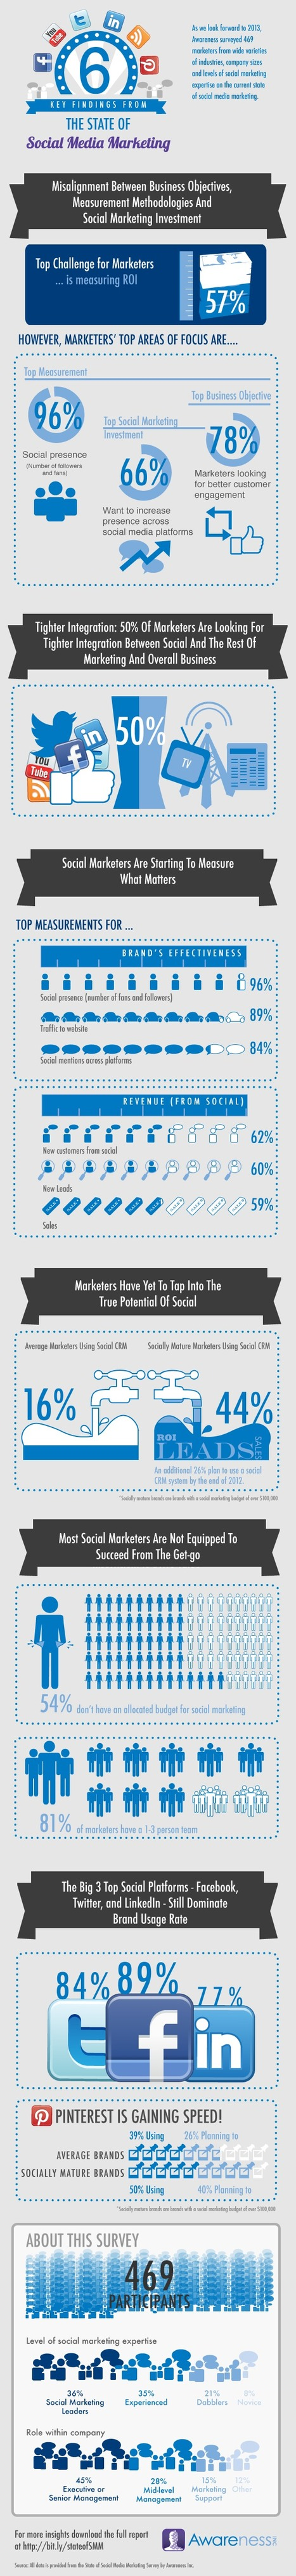 State of Social Marketing Survey [Infographic] | Business for small businesses | Scoop.it